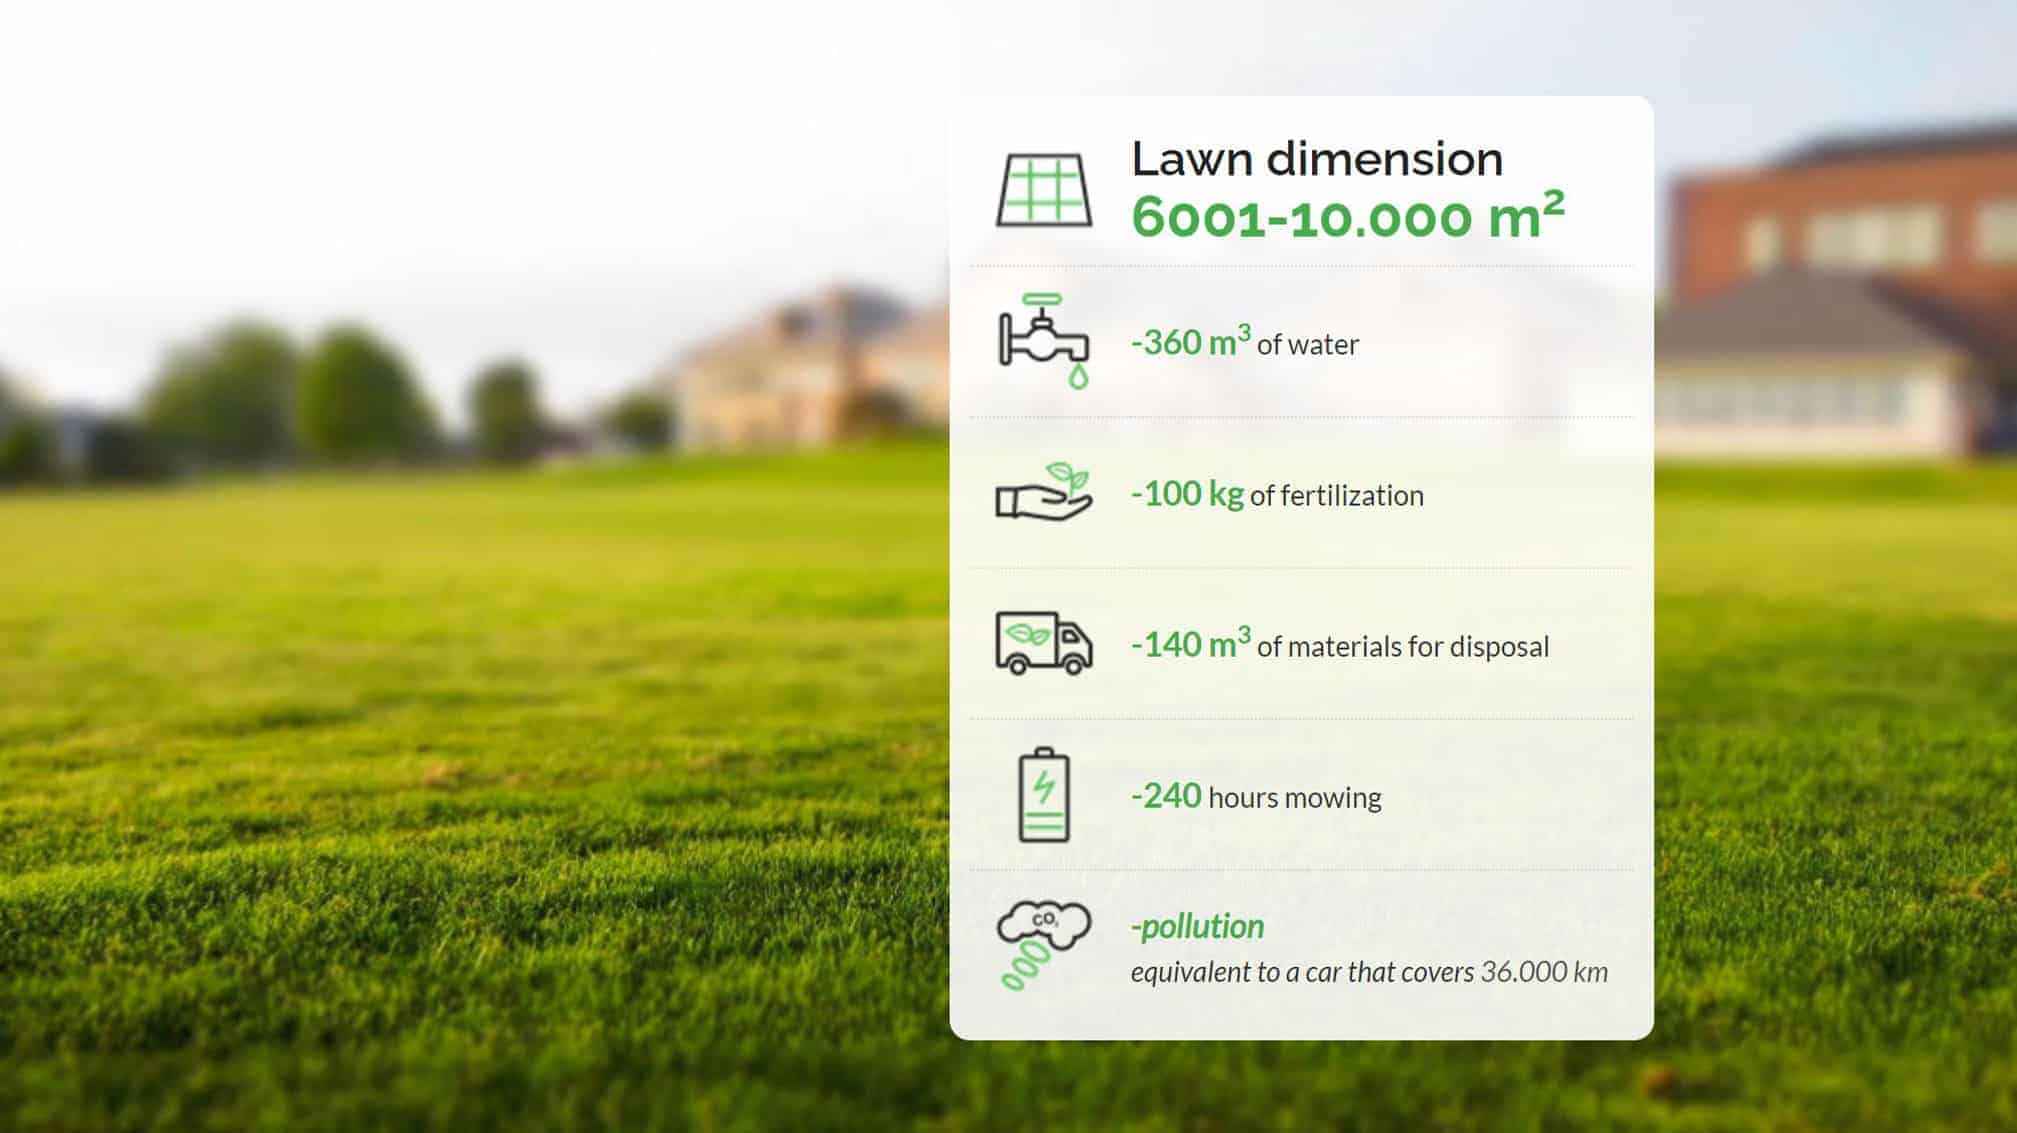 Annual saving by using a robotic mower in 6001-10.000m2 lawn dimension-